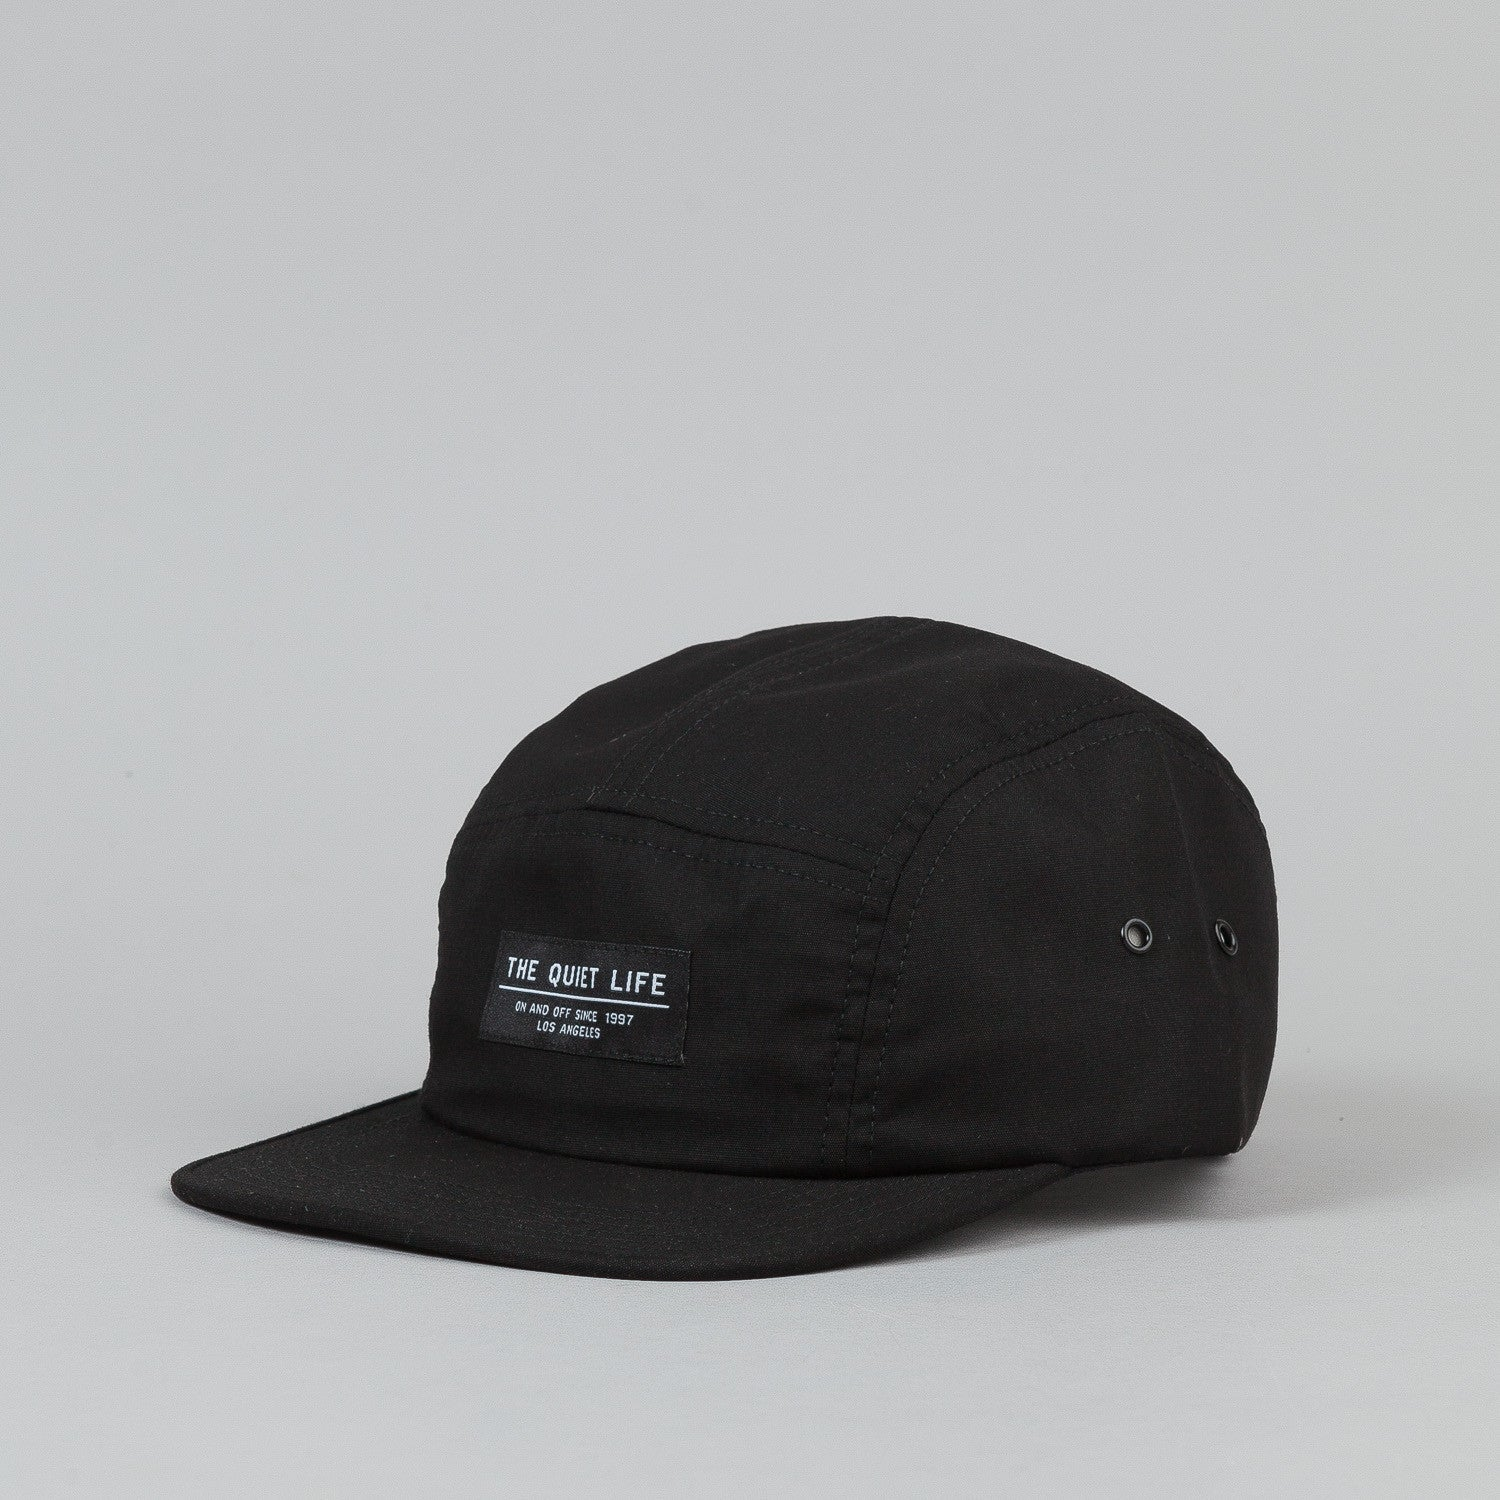 The Quiet Life Whisper 5 Panel Cap Black